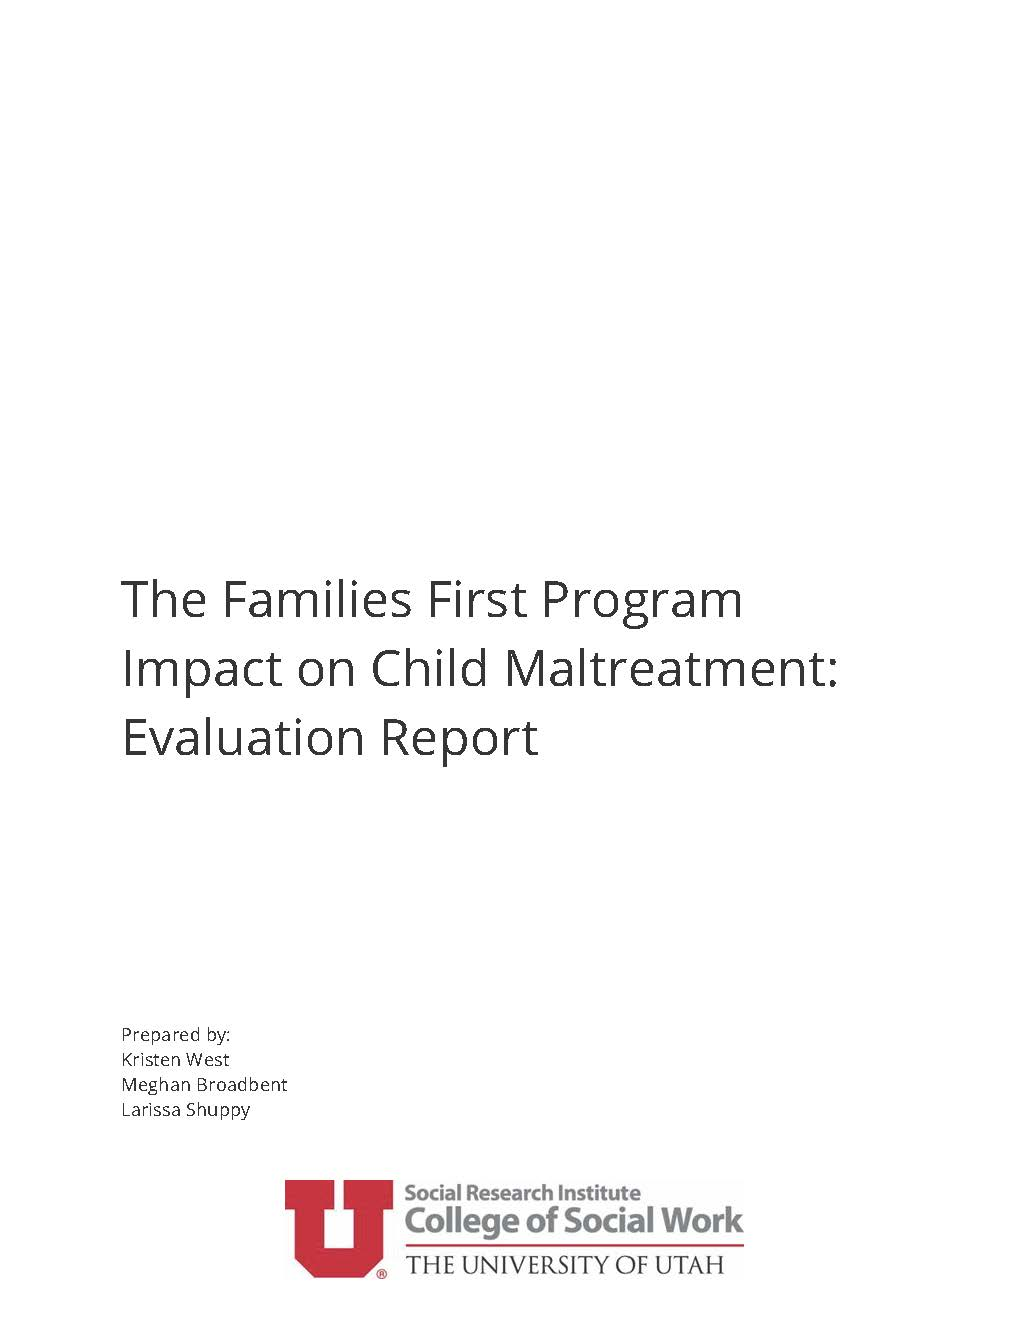 Families First Program Impact on Child Maltreatment Evaluation Report cover image